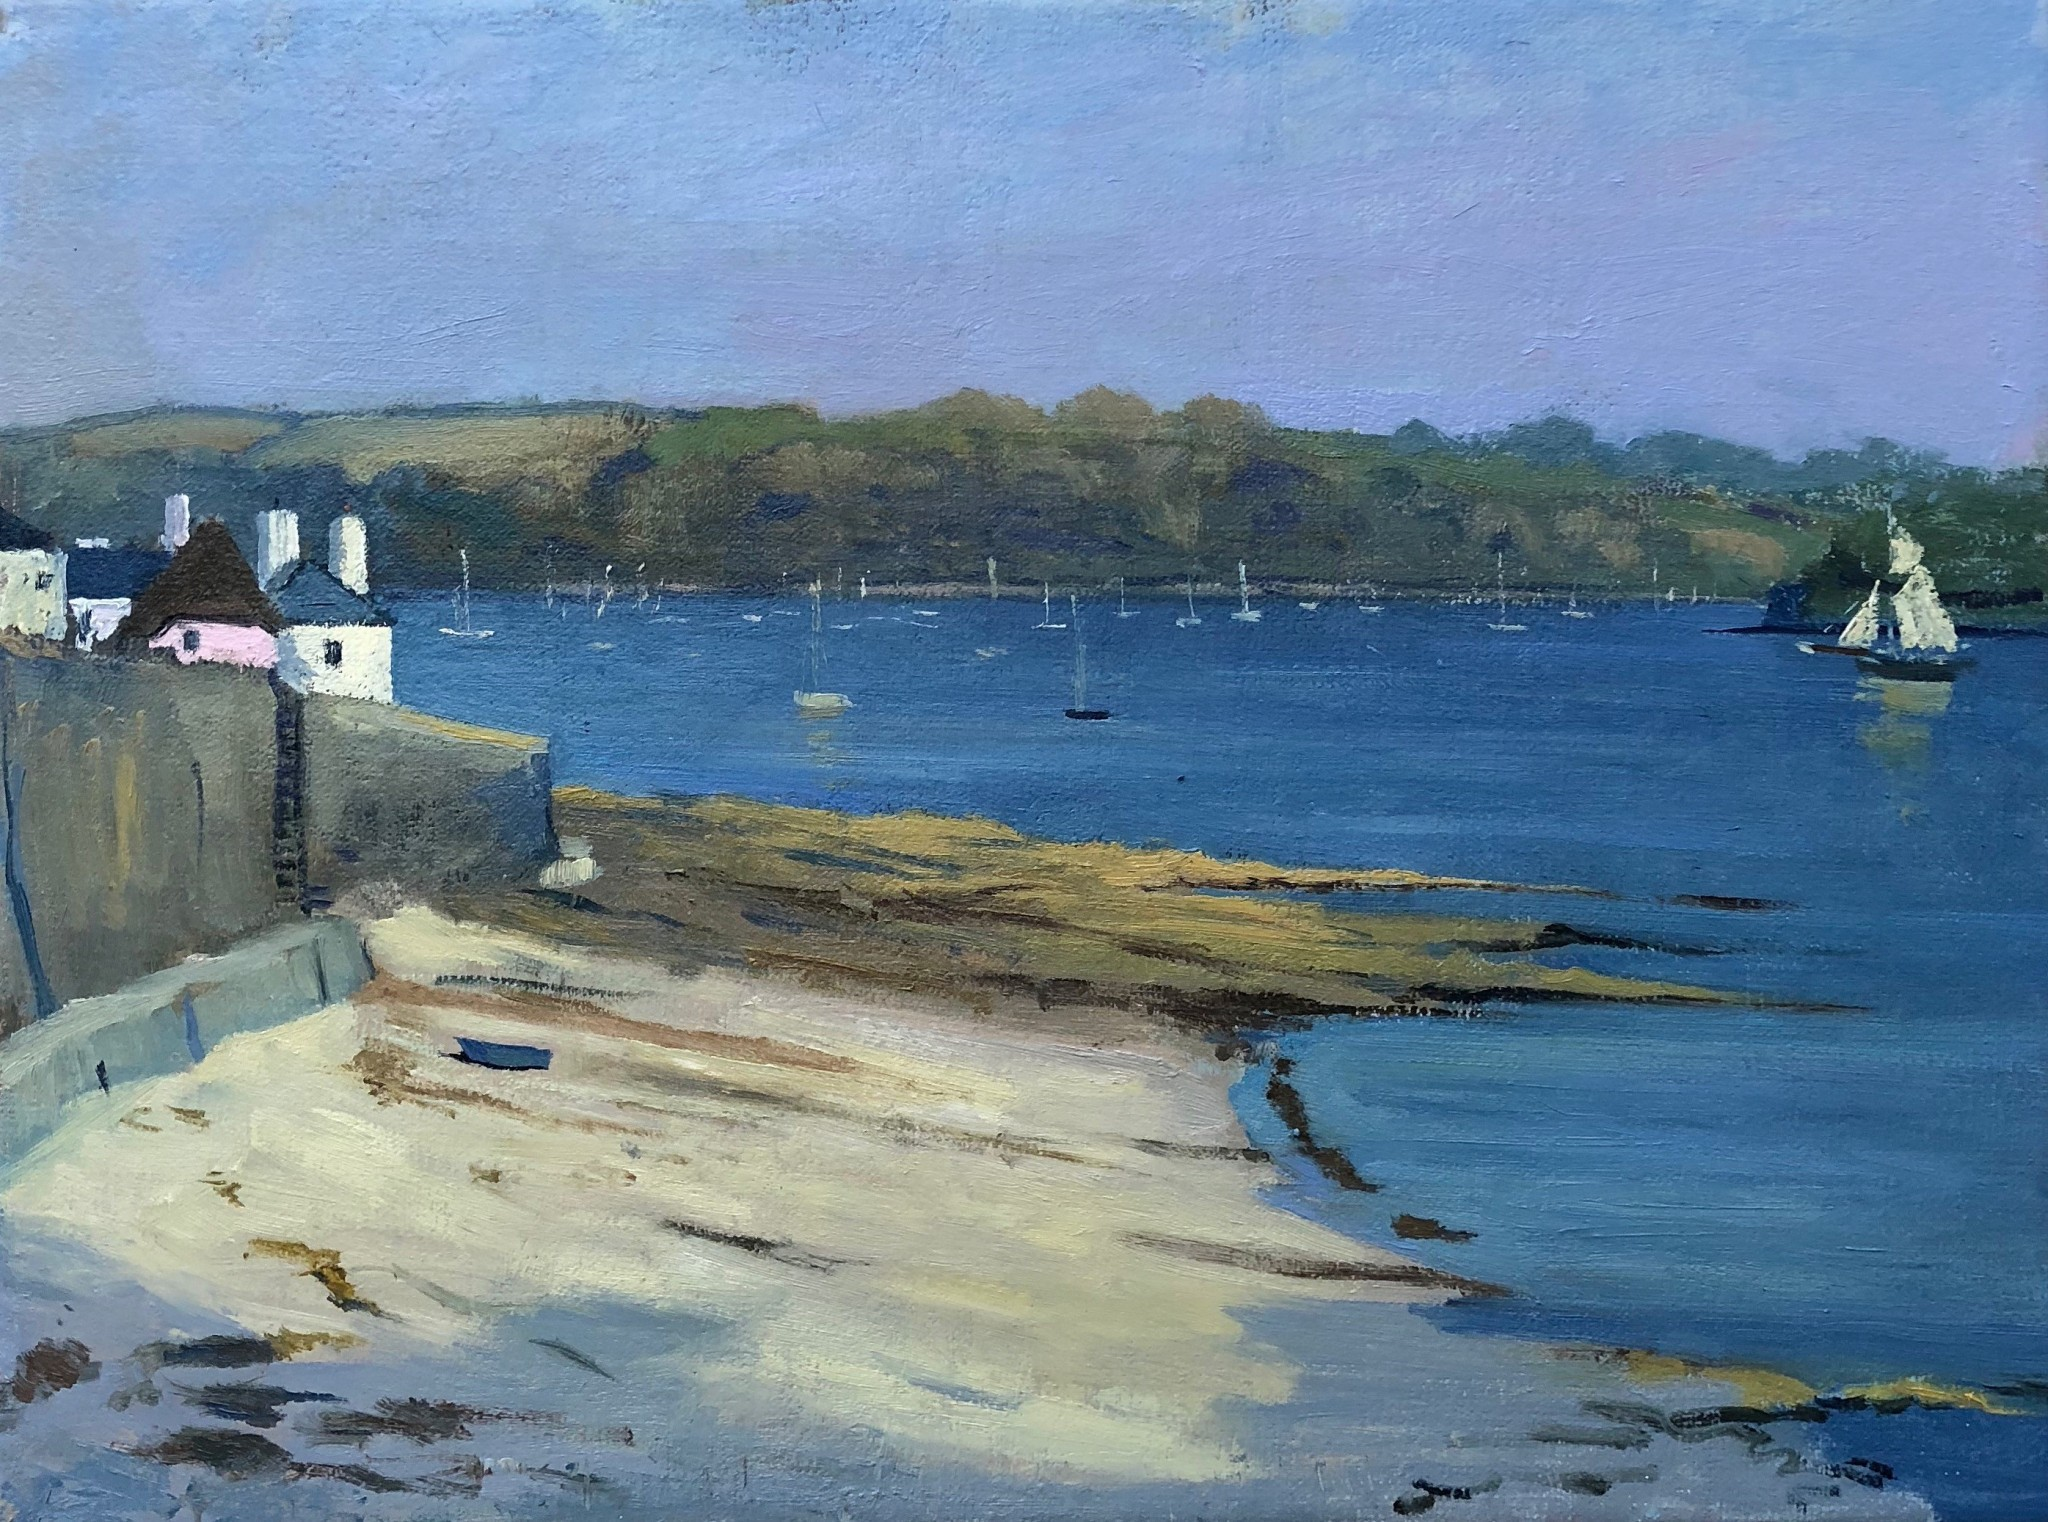 Evening Light on Tresanton Beach And the Sails of a Working Boat coming into Harbour